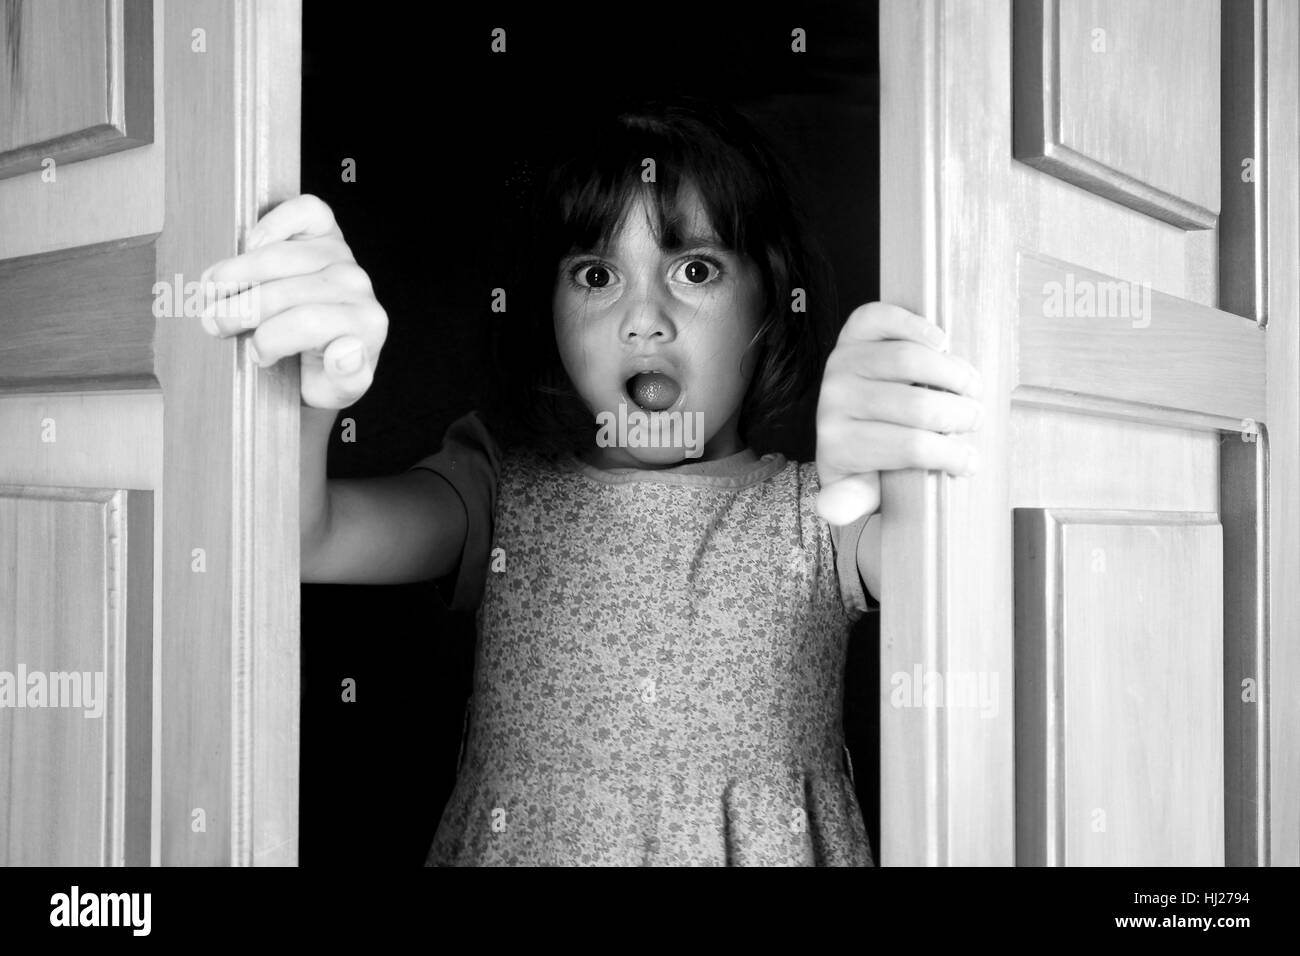 Young girl (age 6-7)surprised to find and see what is behind closed doors. Children childhood concept. Real people - Stock Image